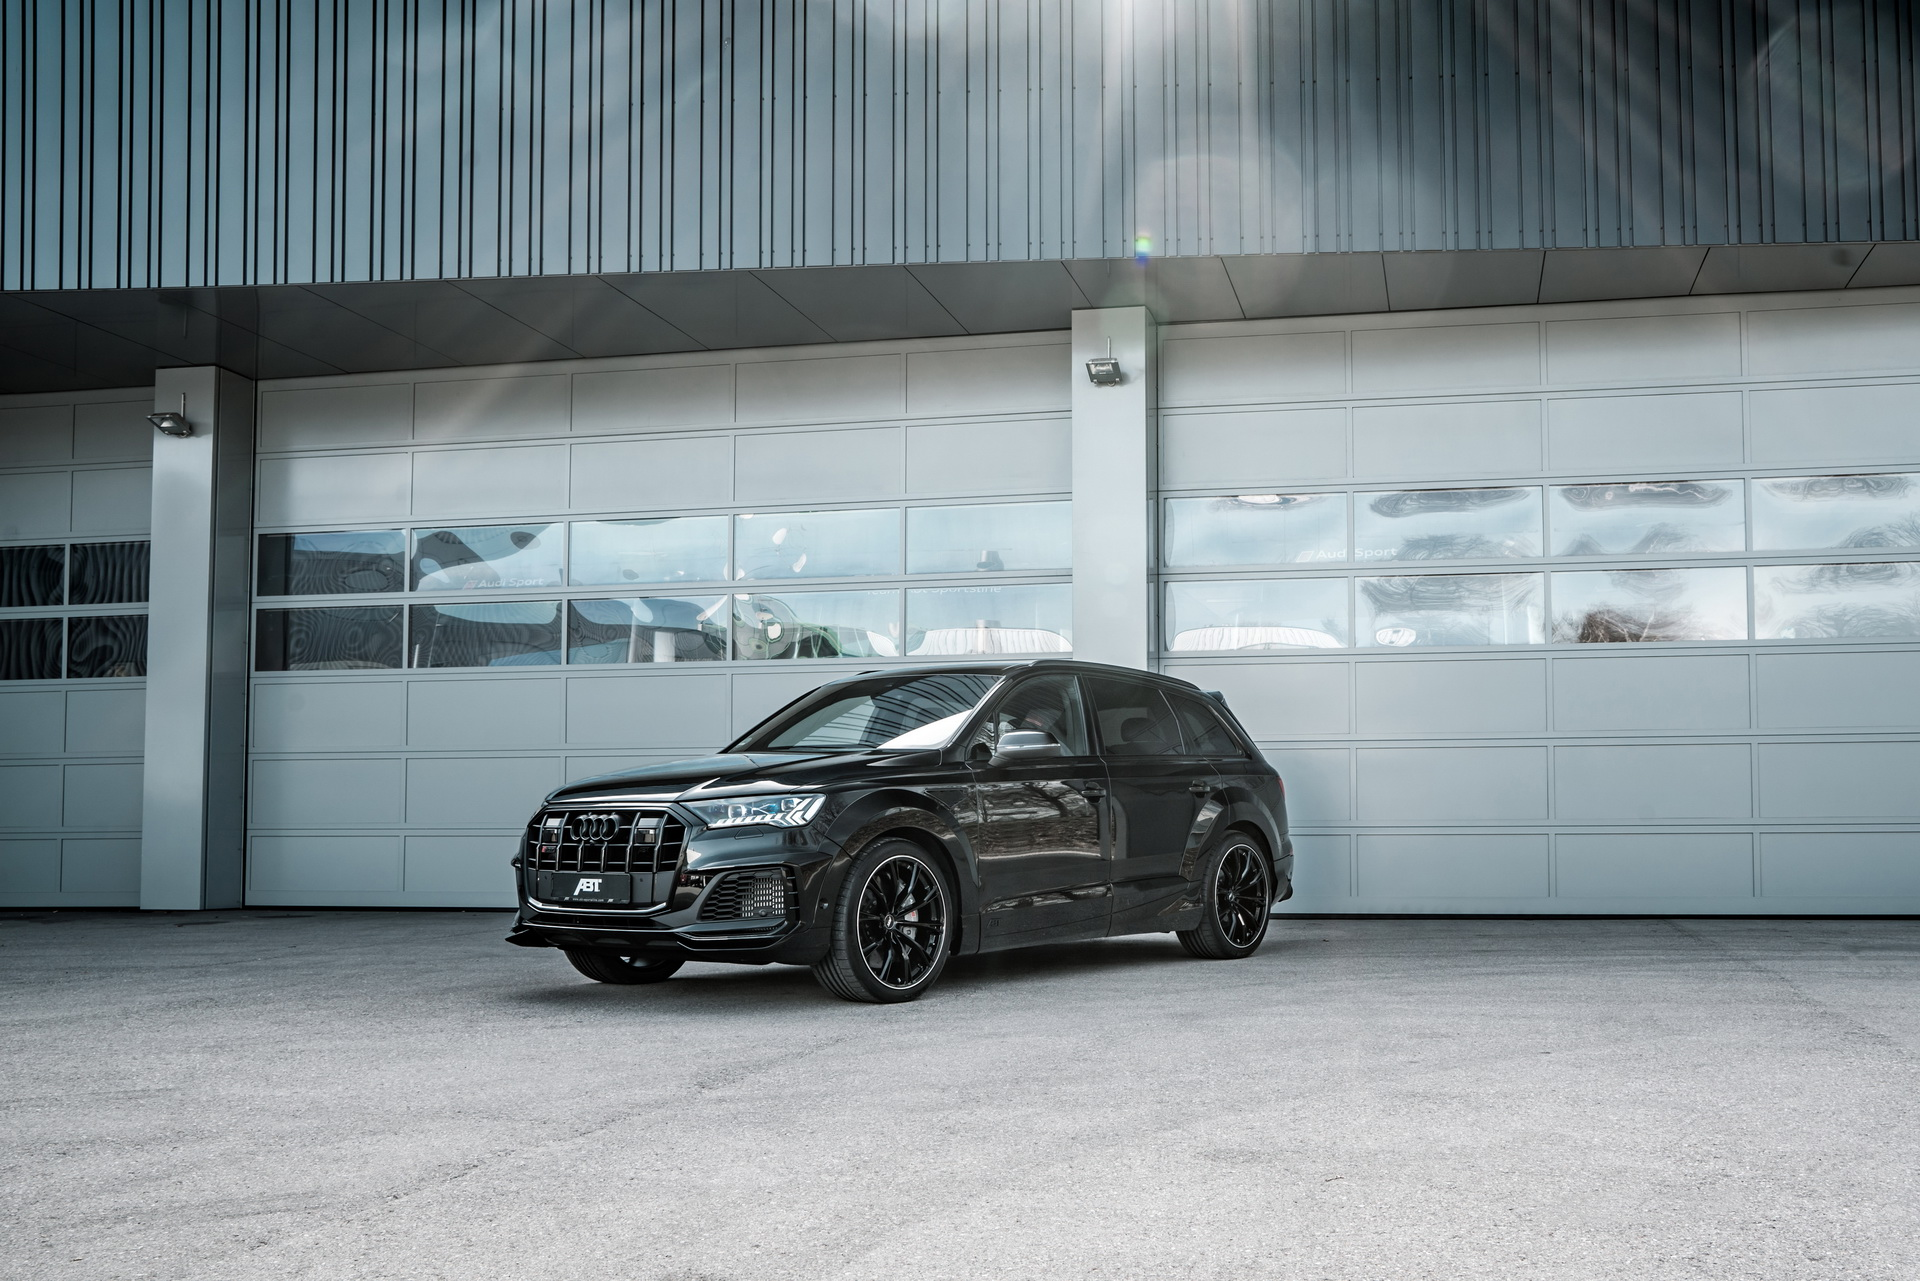 Audi_SQ7_ABT_bodykit_0012